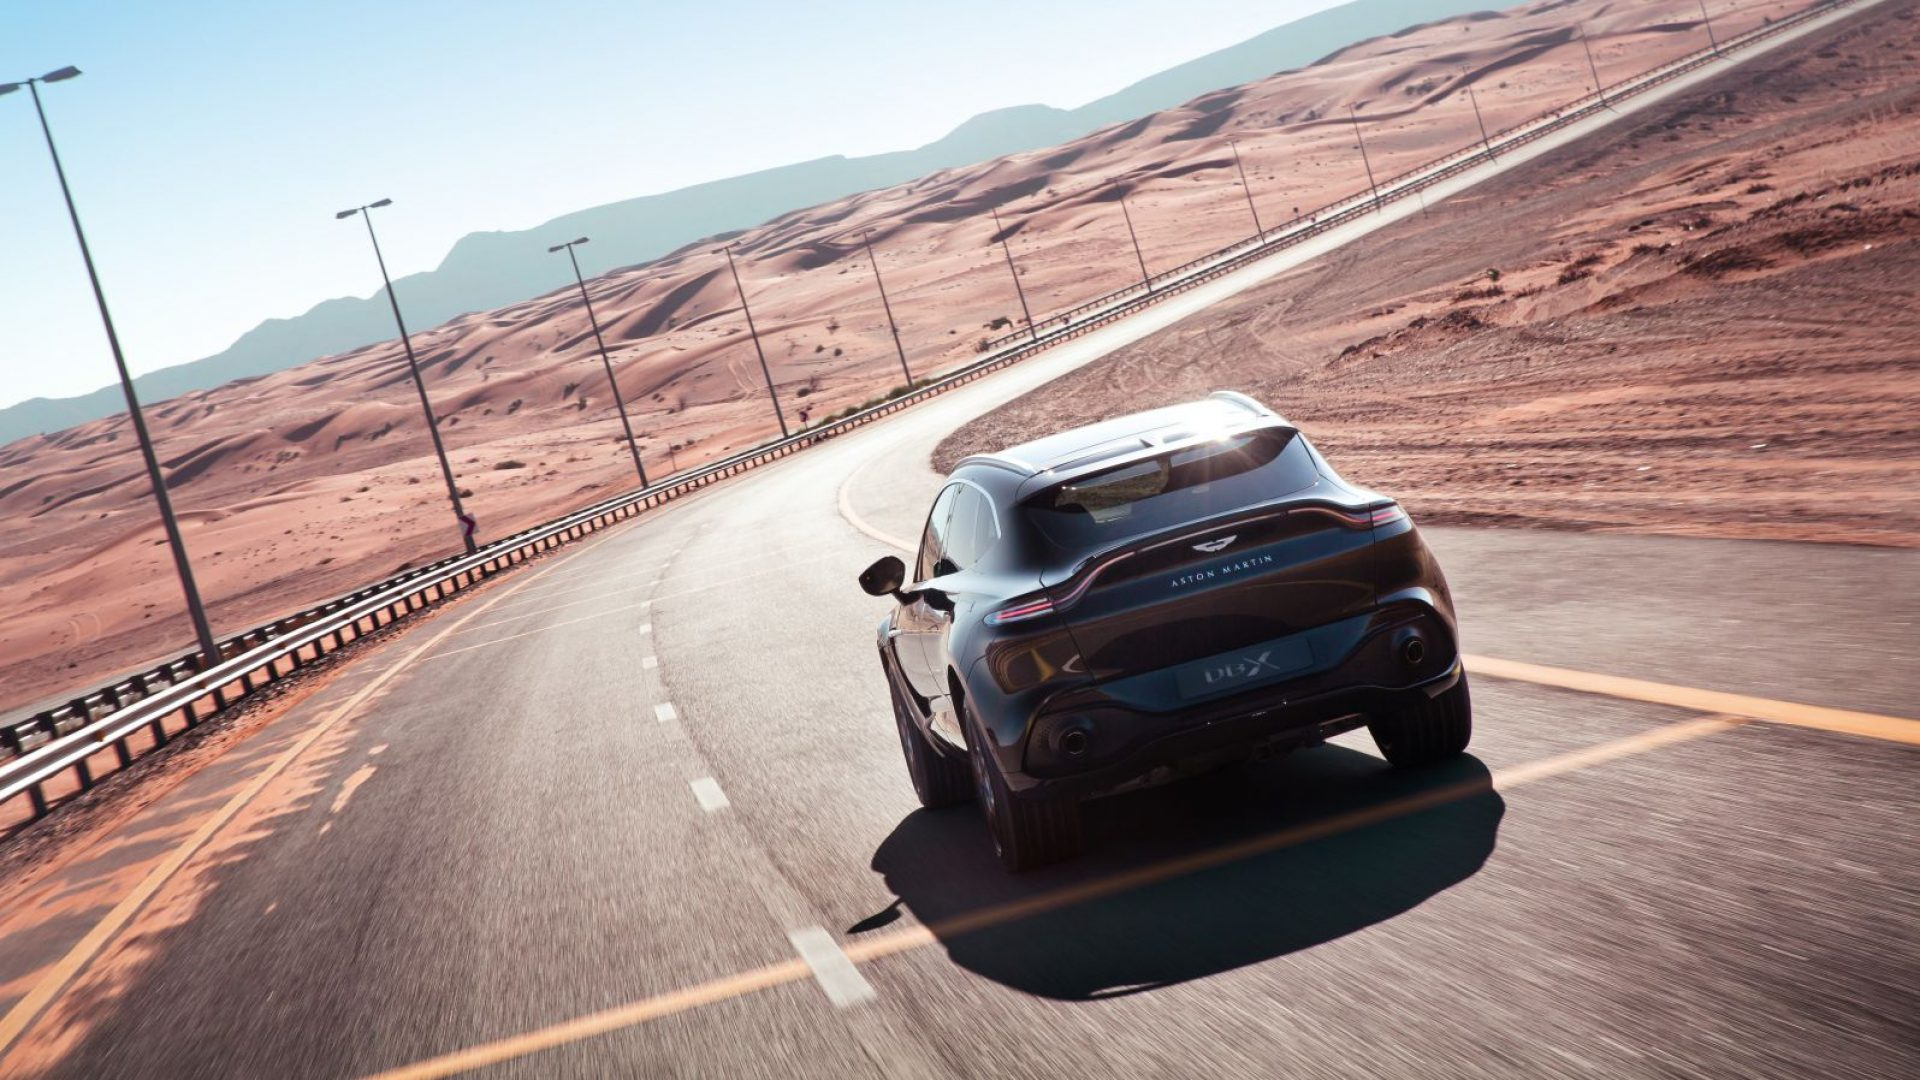 aston-martin-dbx-in-the-middle-east-25-jpg.